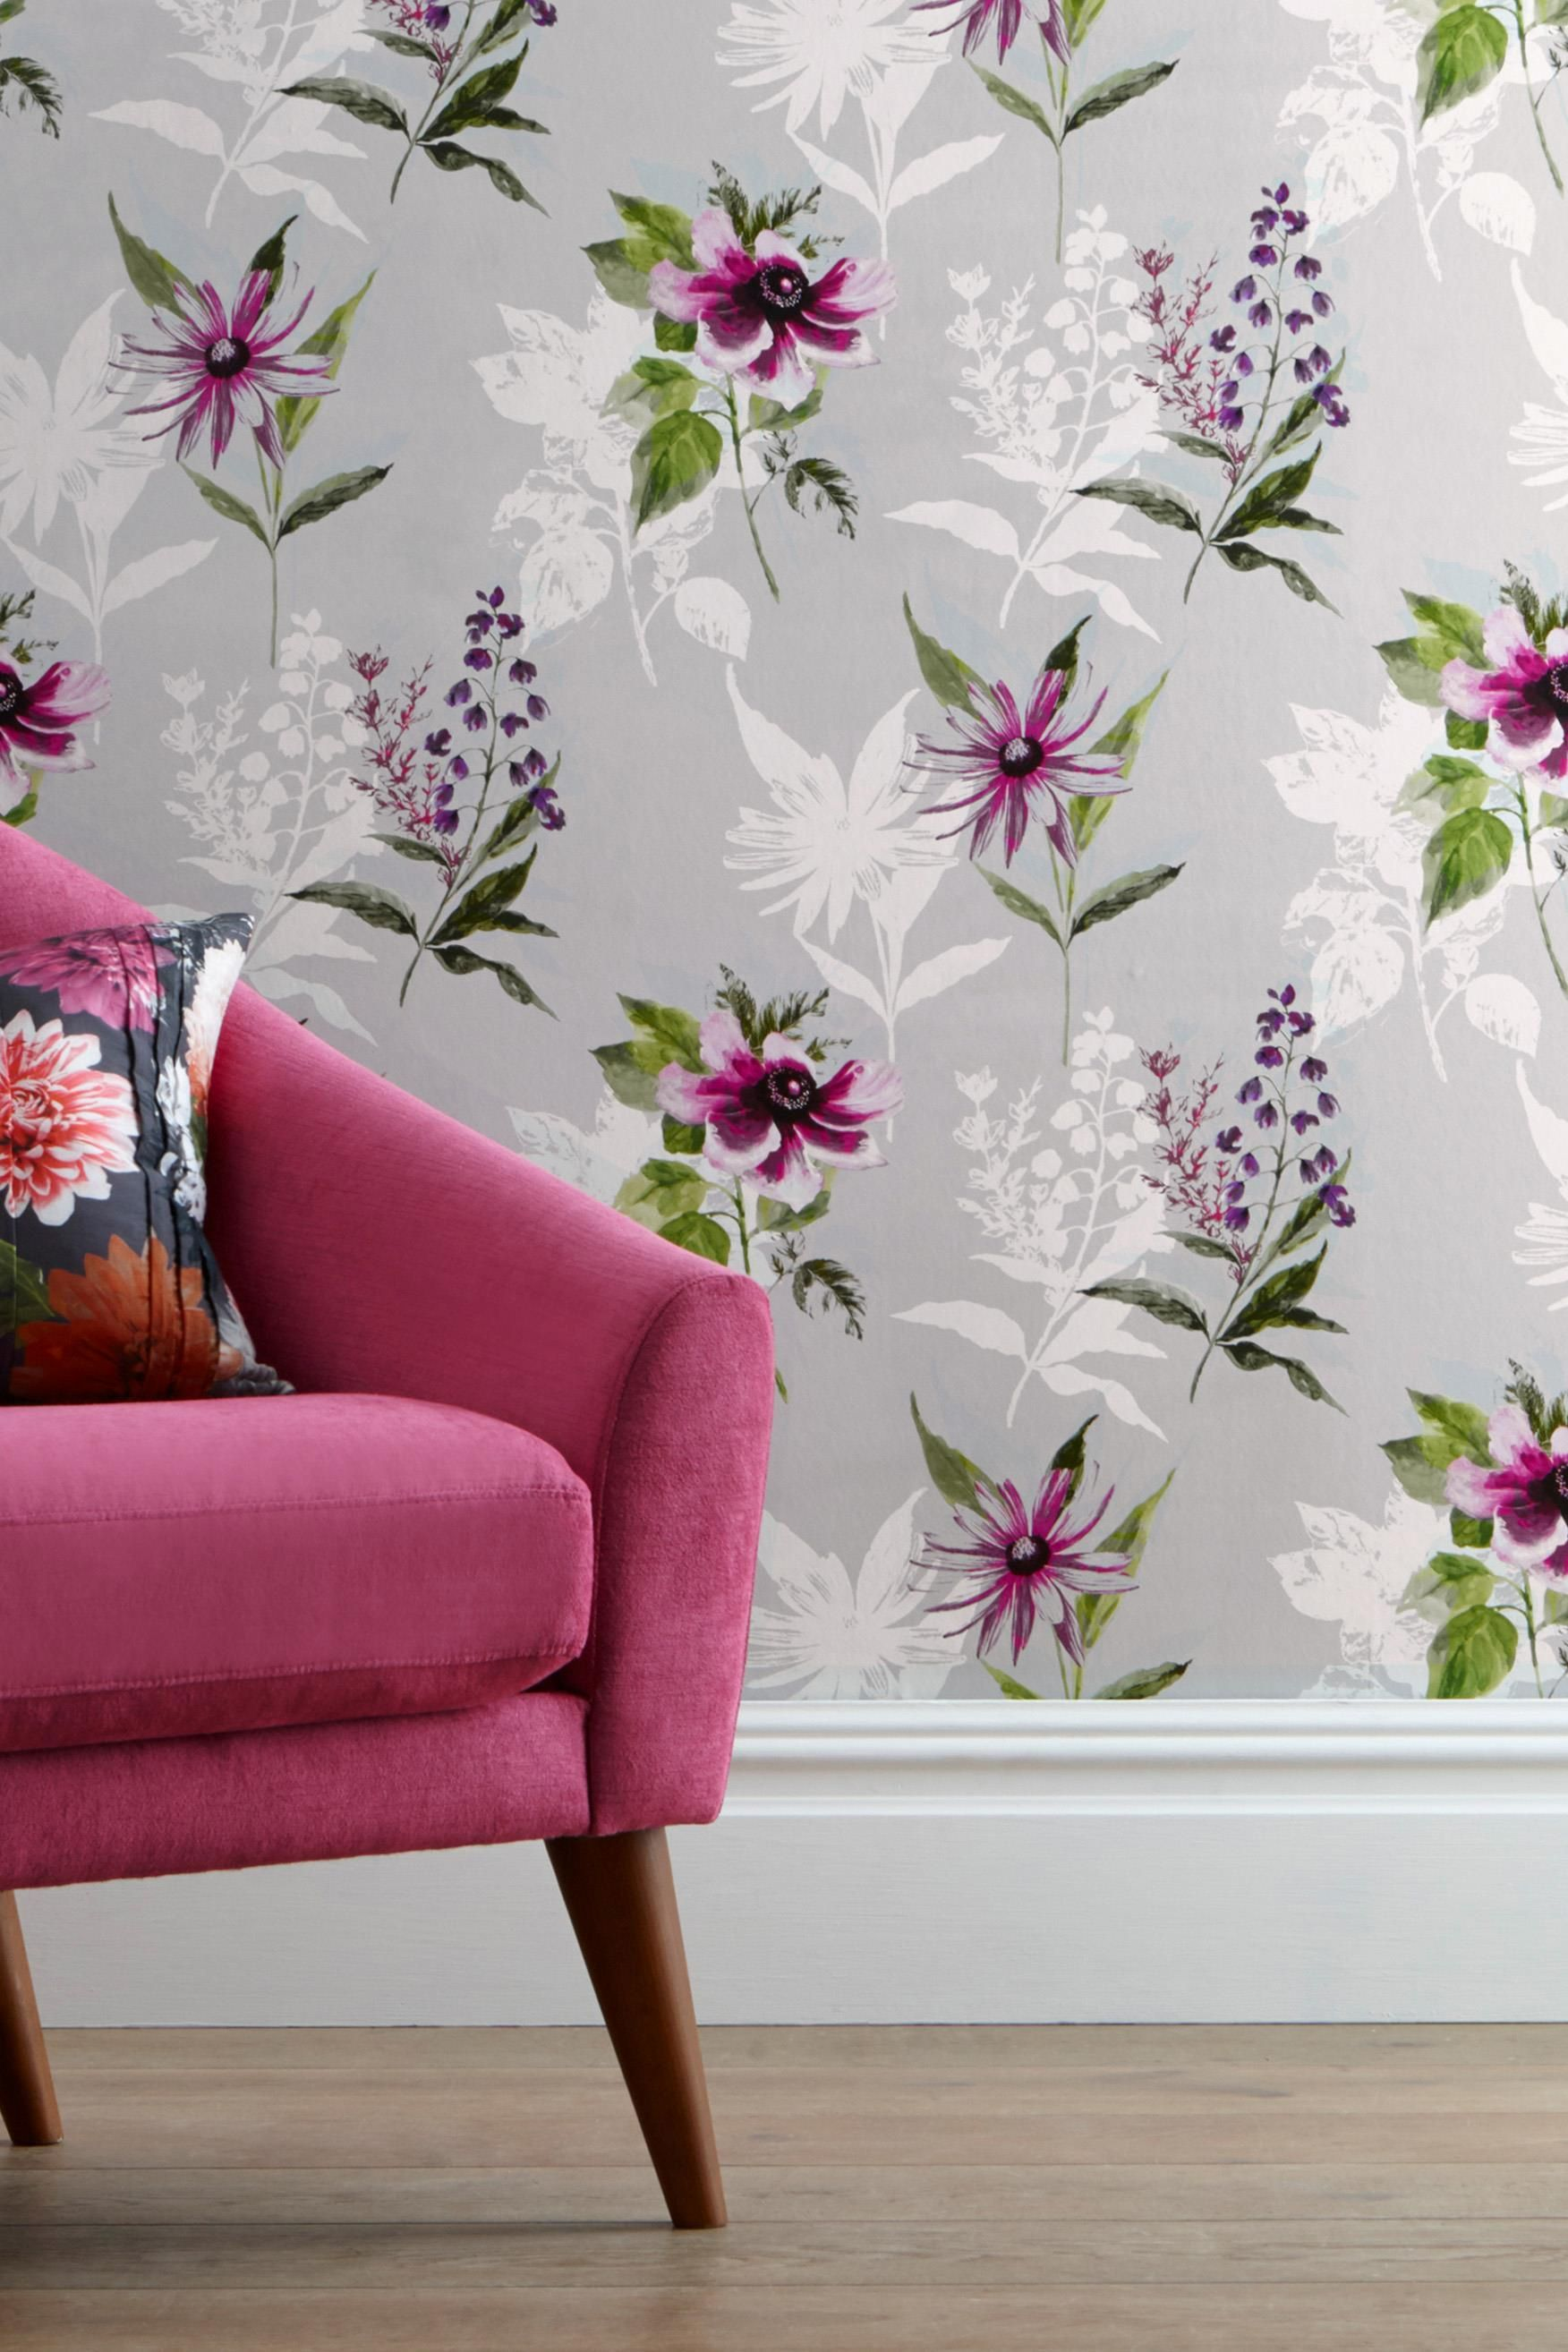 Buy Vibrant Floral Paste The Wall Wallpaper from the Next